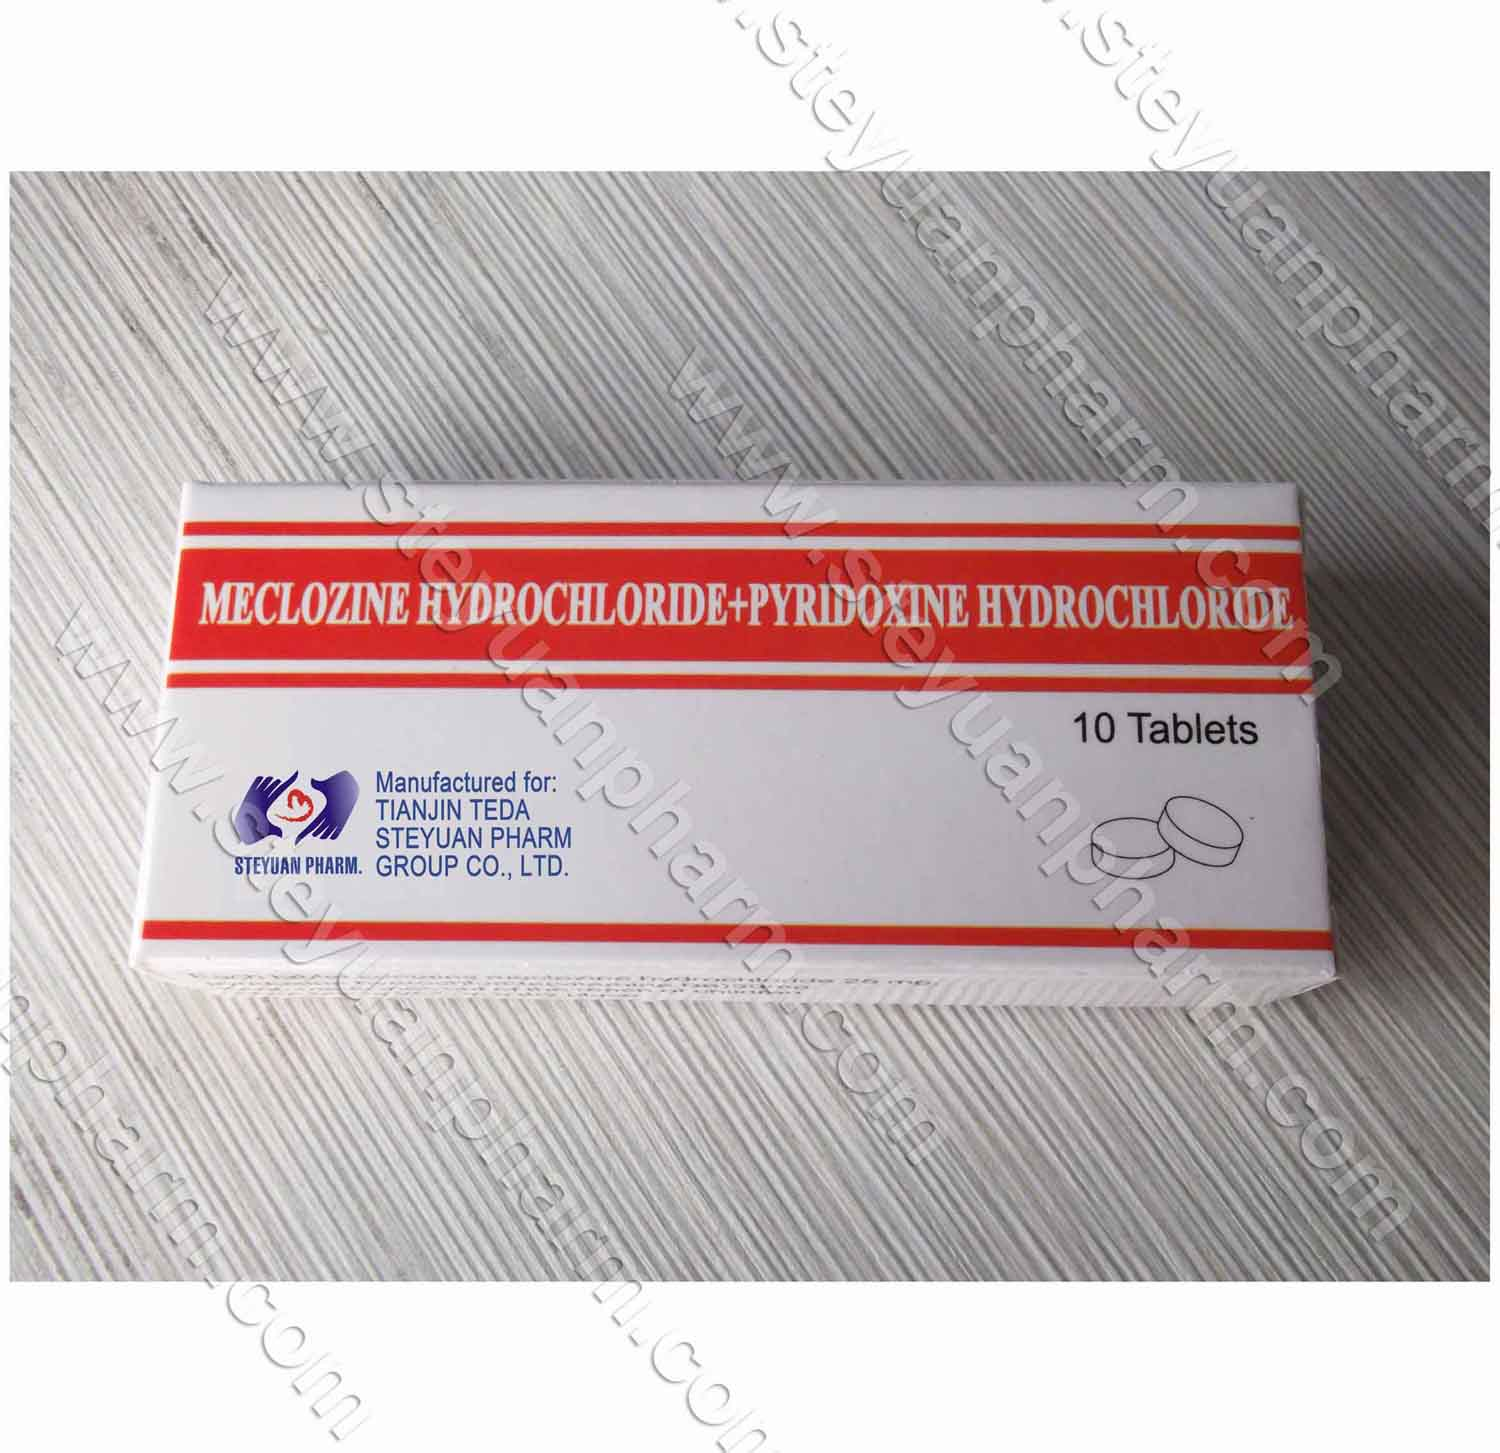 neurontin 600 mg.50 film tablet